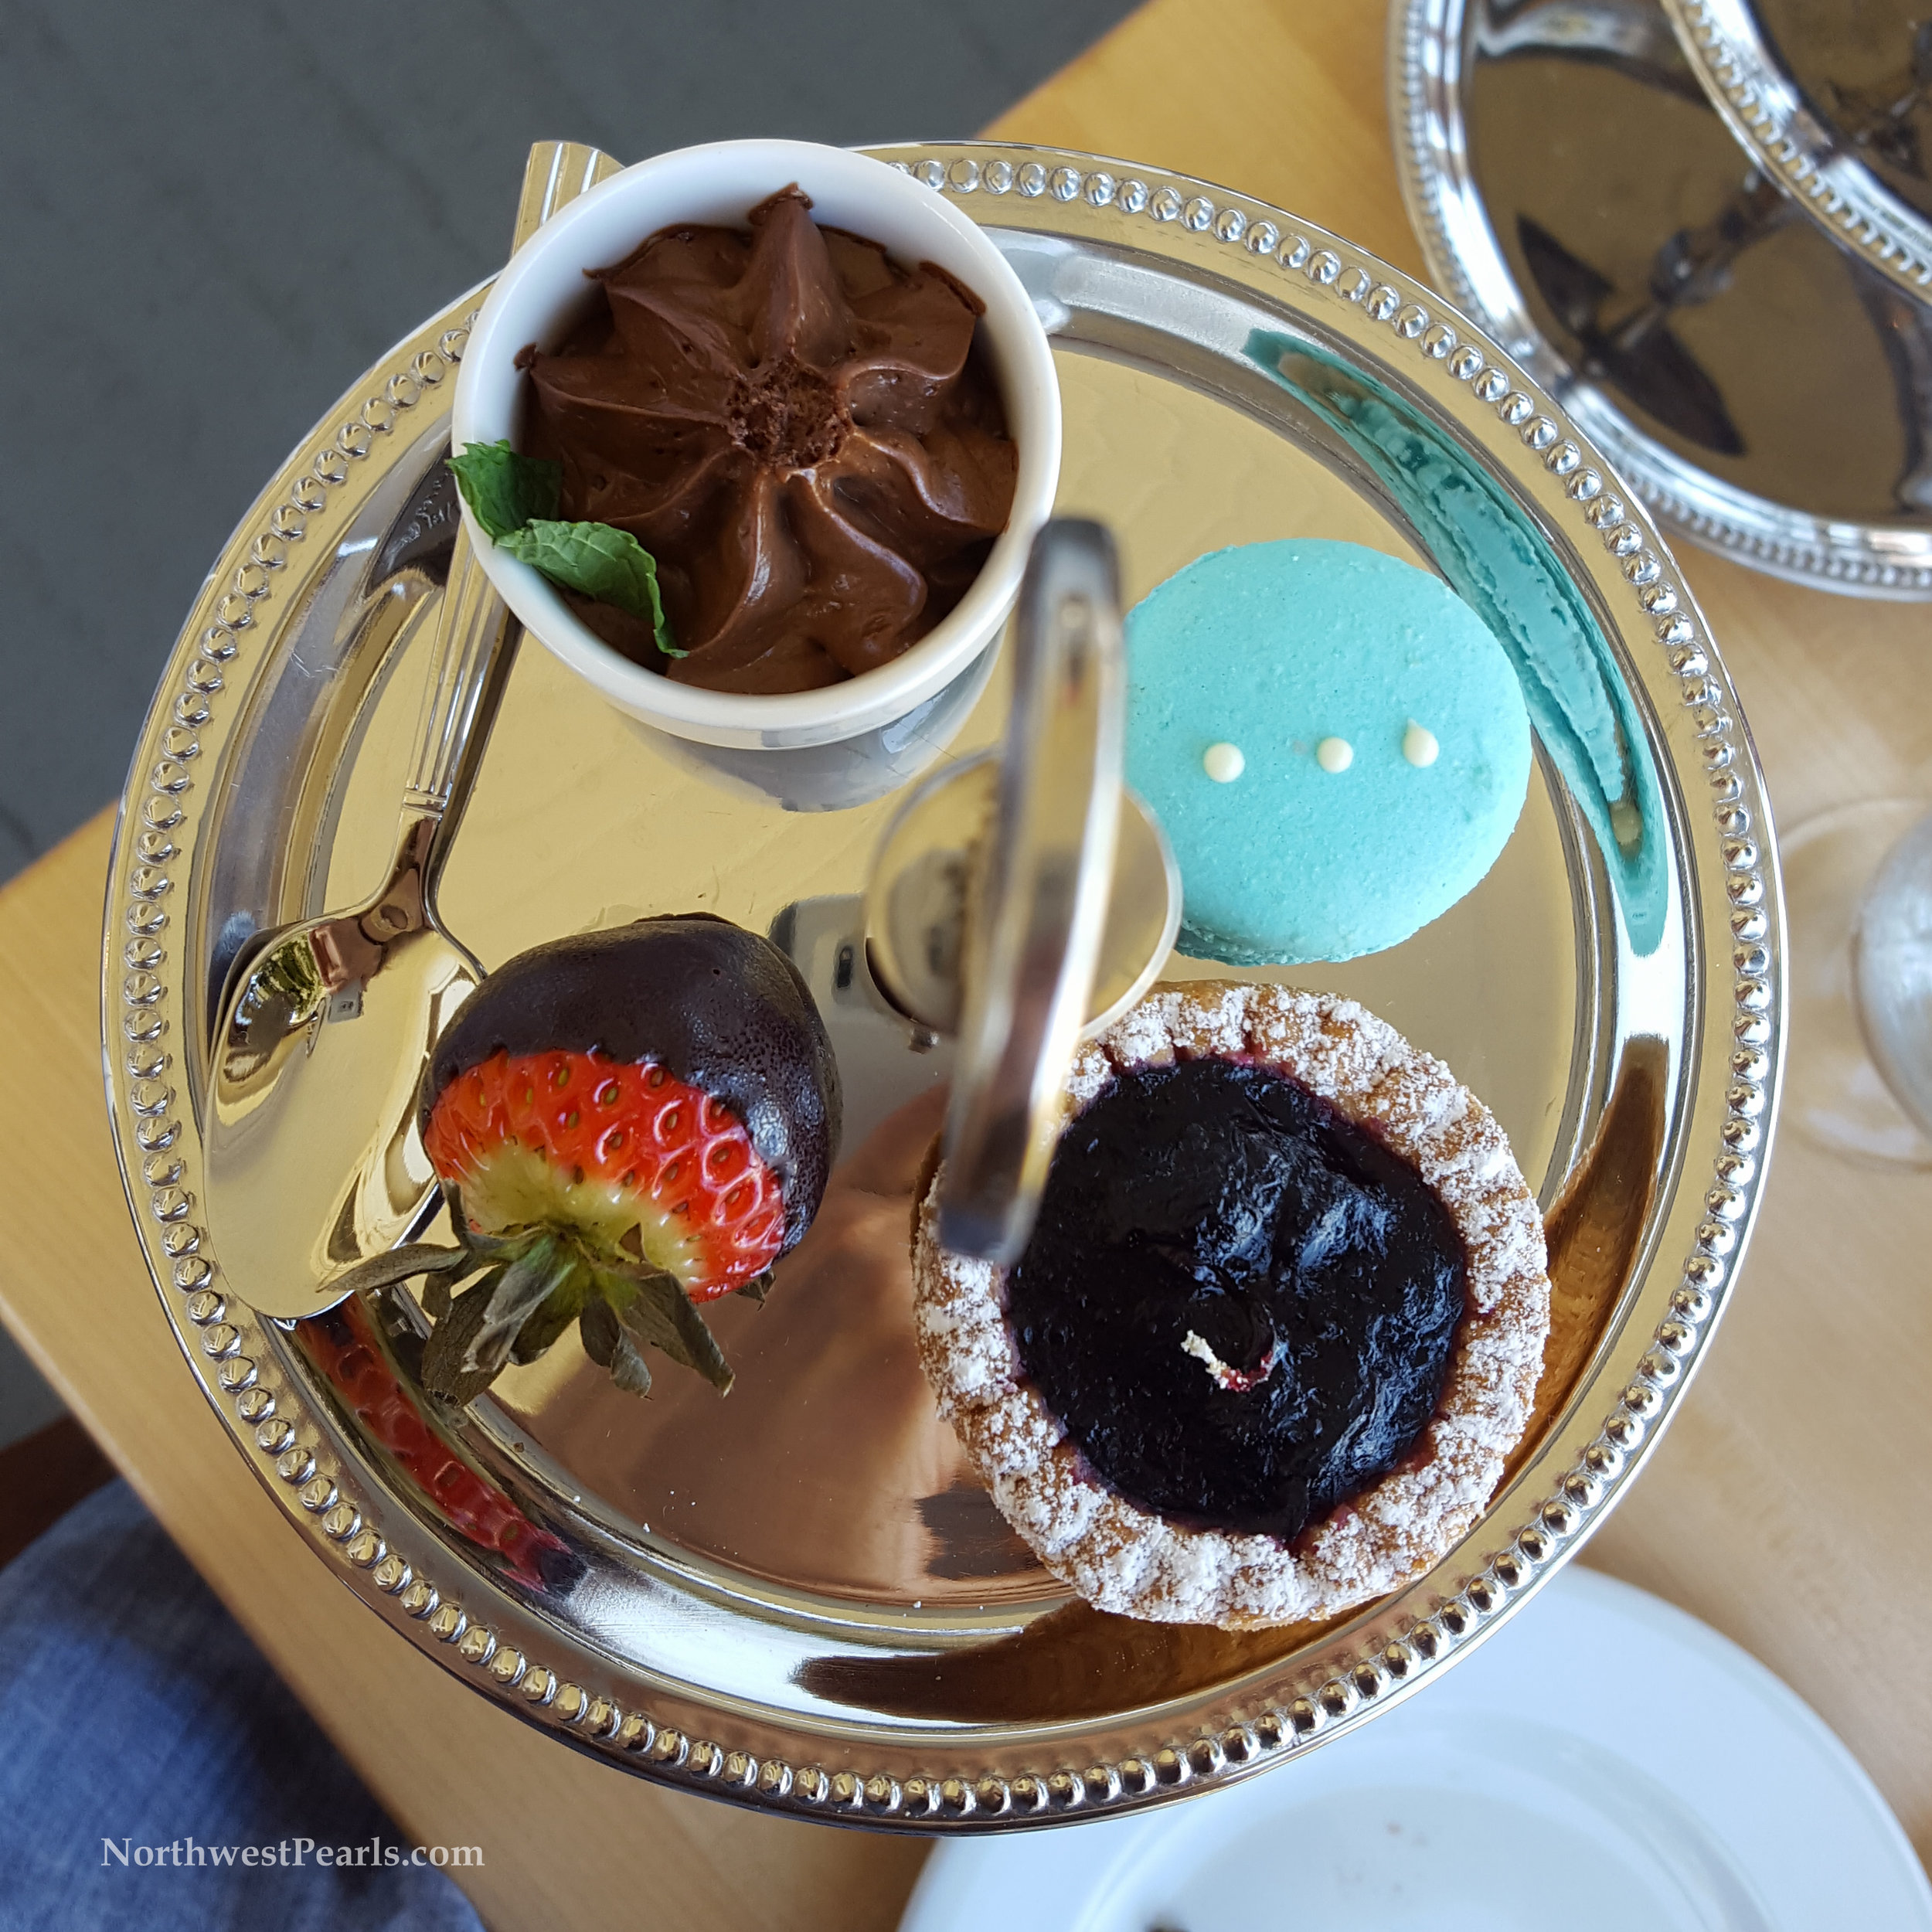 Northwest Pearls: Afternoon Tea